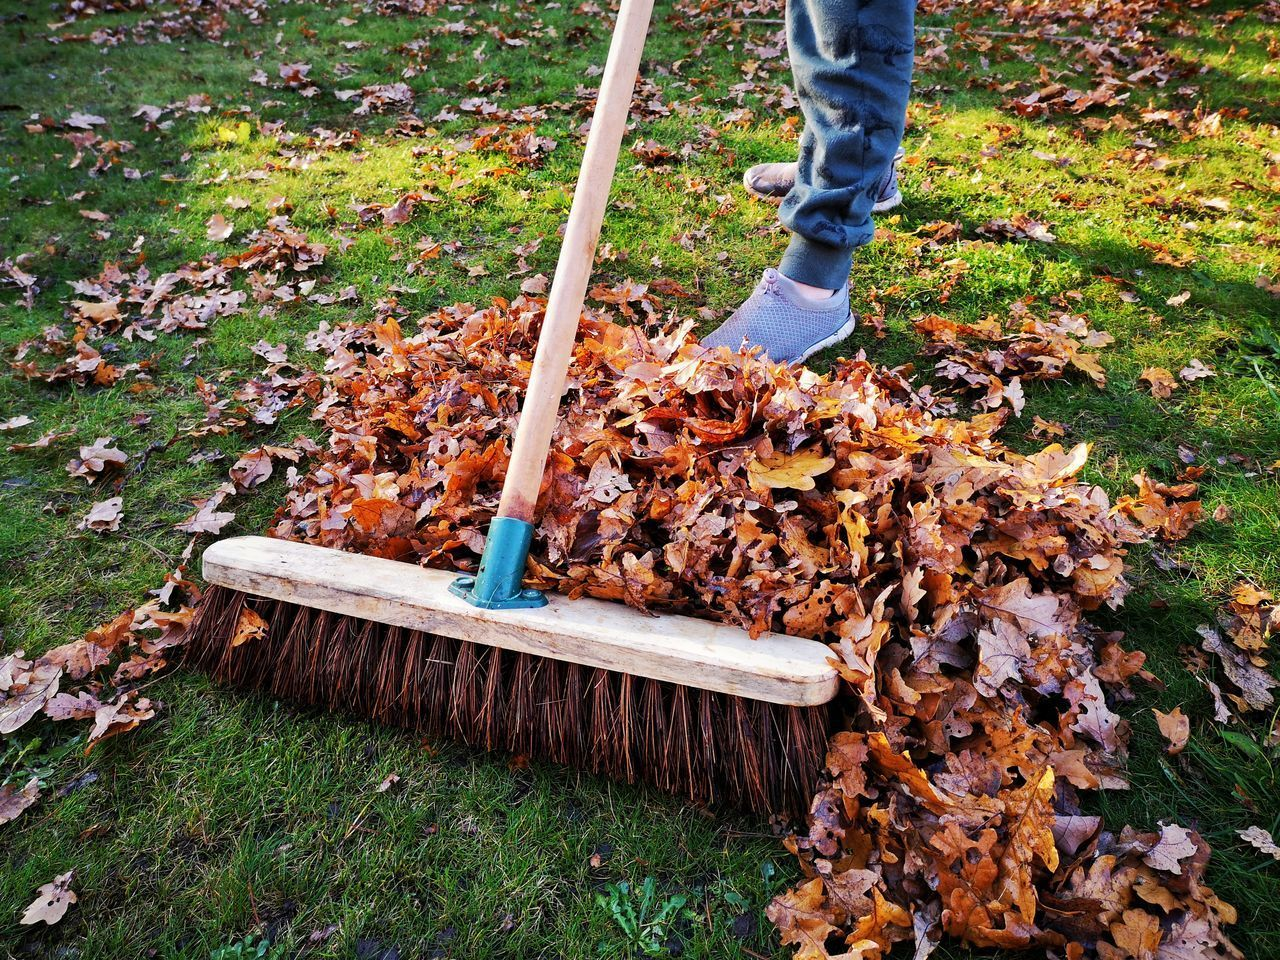 autumn, leaf, low section, broom, plant part, nature, cleaning, human leg, one person, rake, day, plant, sweeping, standing, change, human body part, real people, outdoors, body part, leaves, human limb, messy, gardening